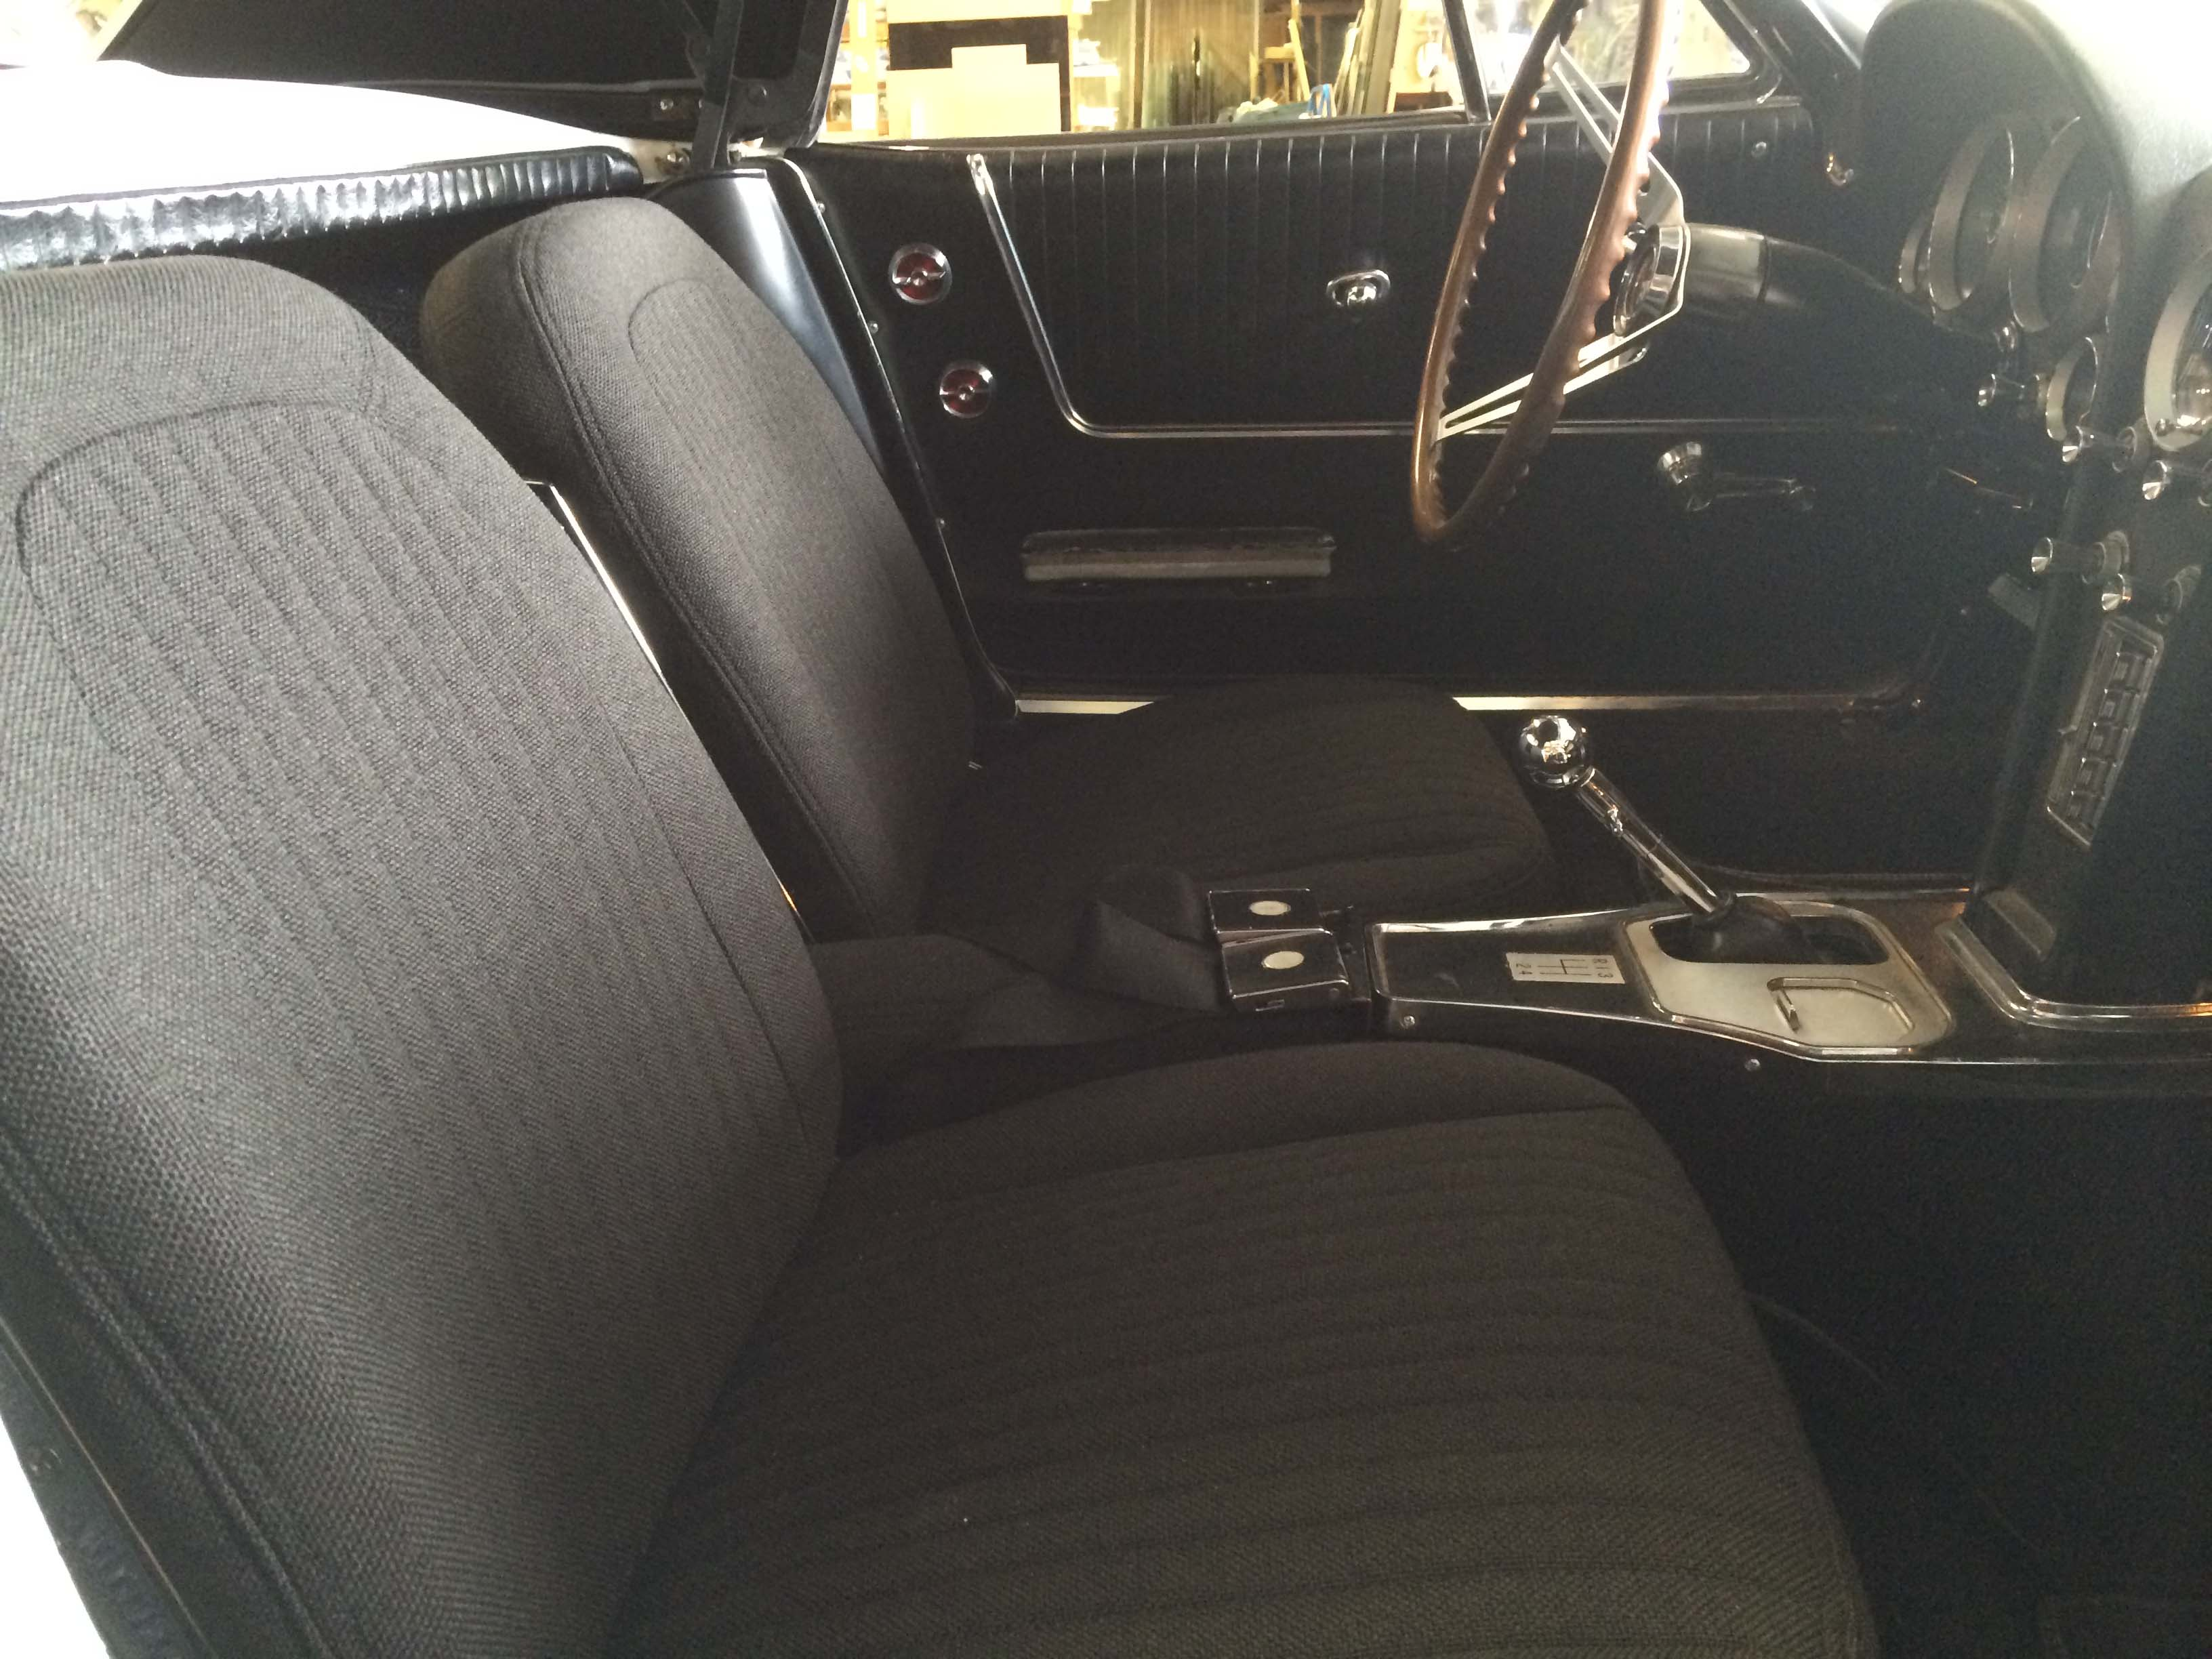 picture of car interior with amazing repair work on it